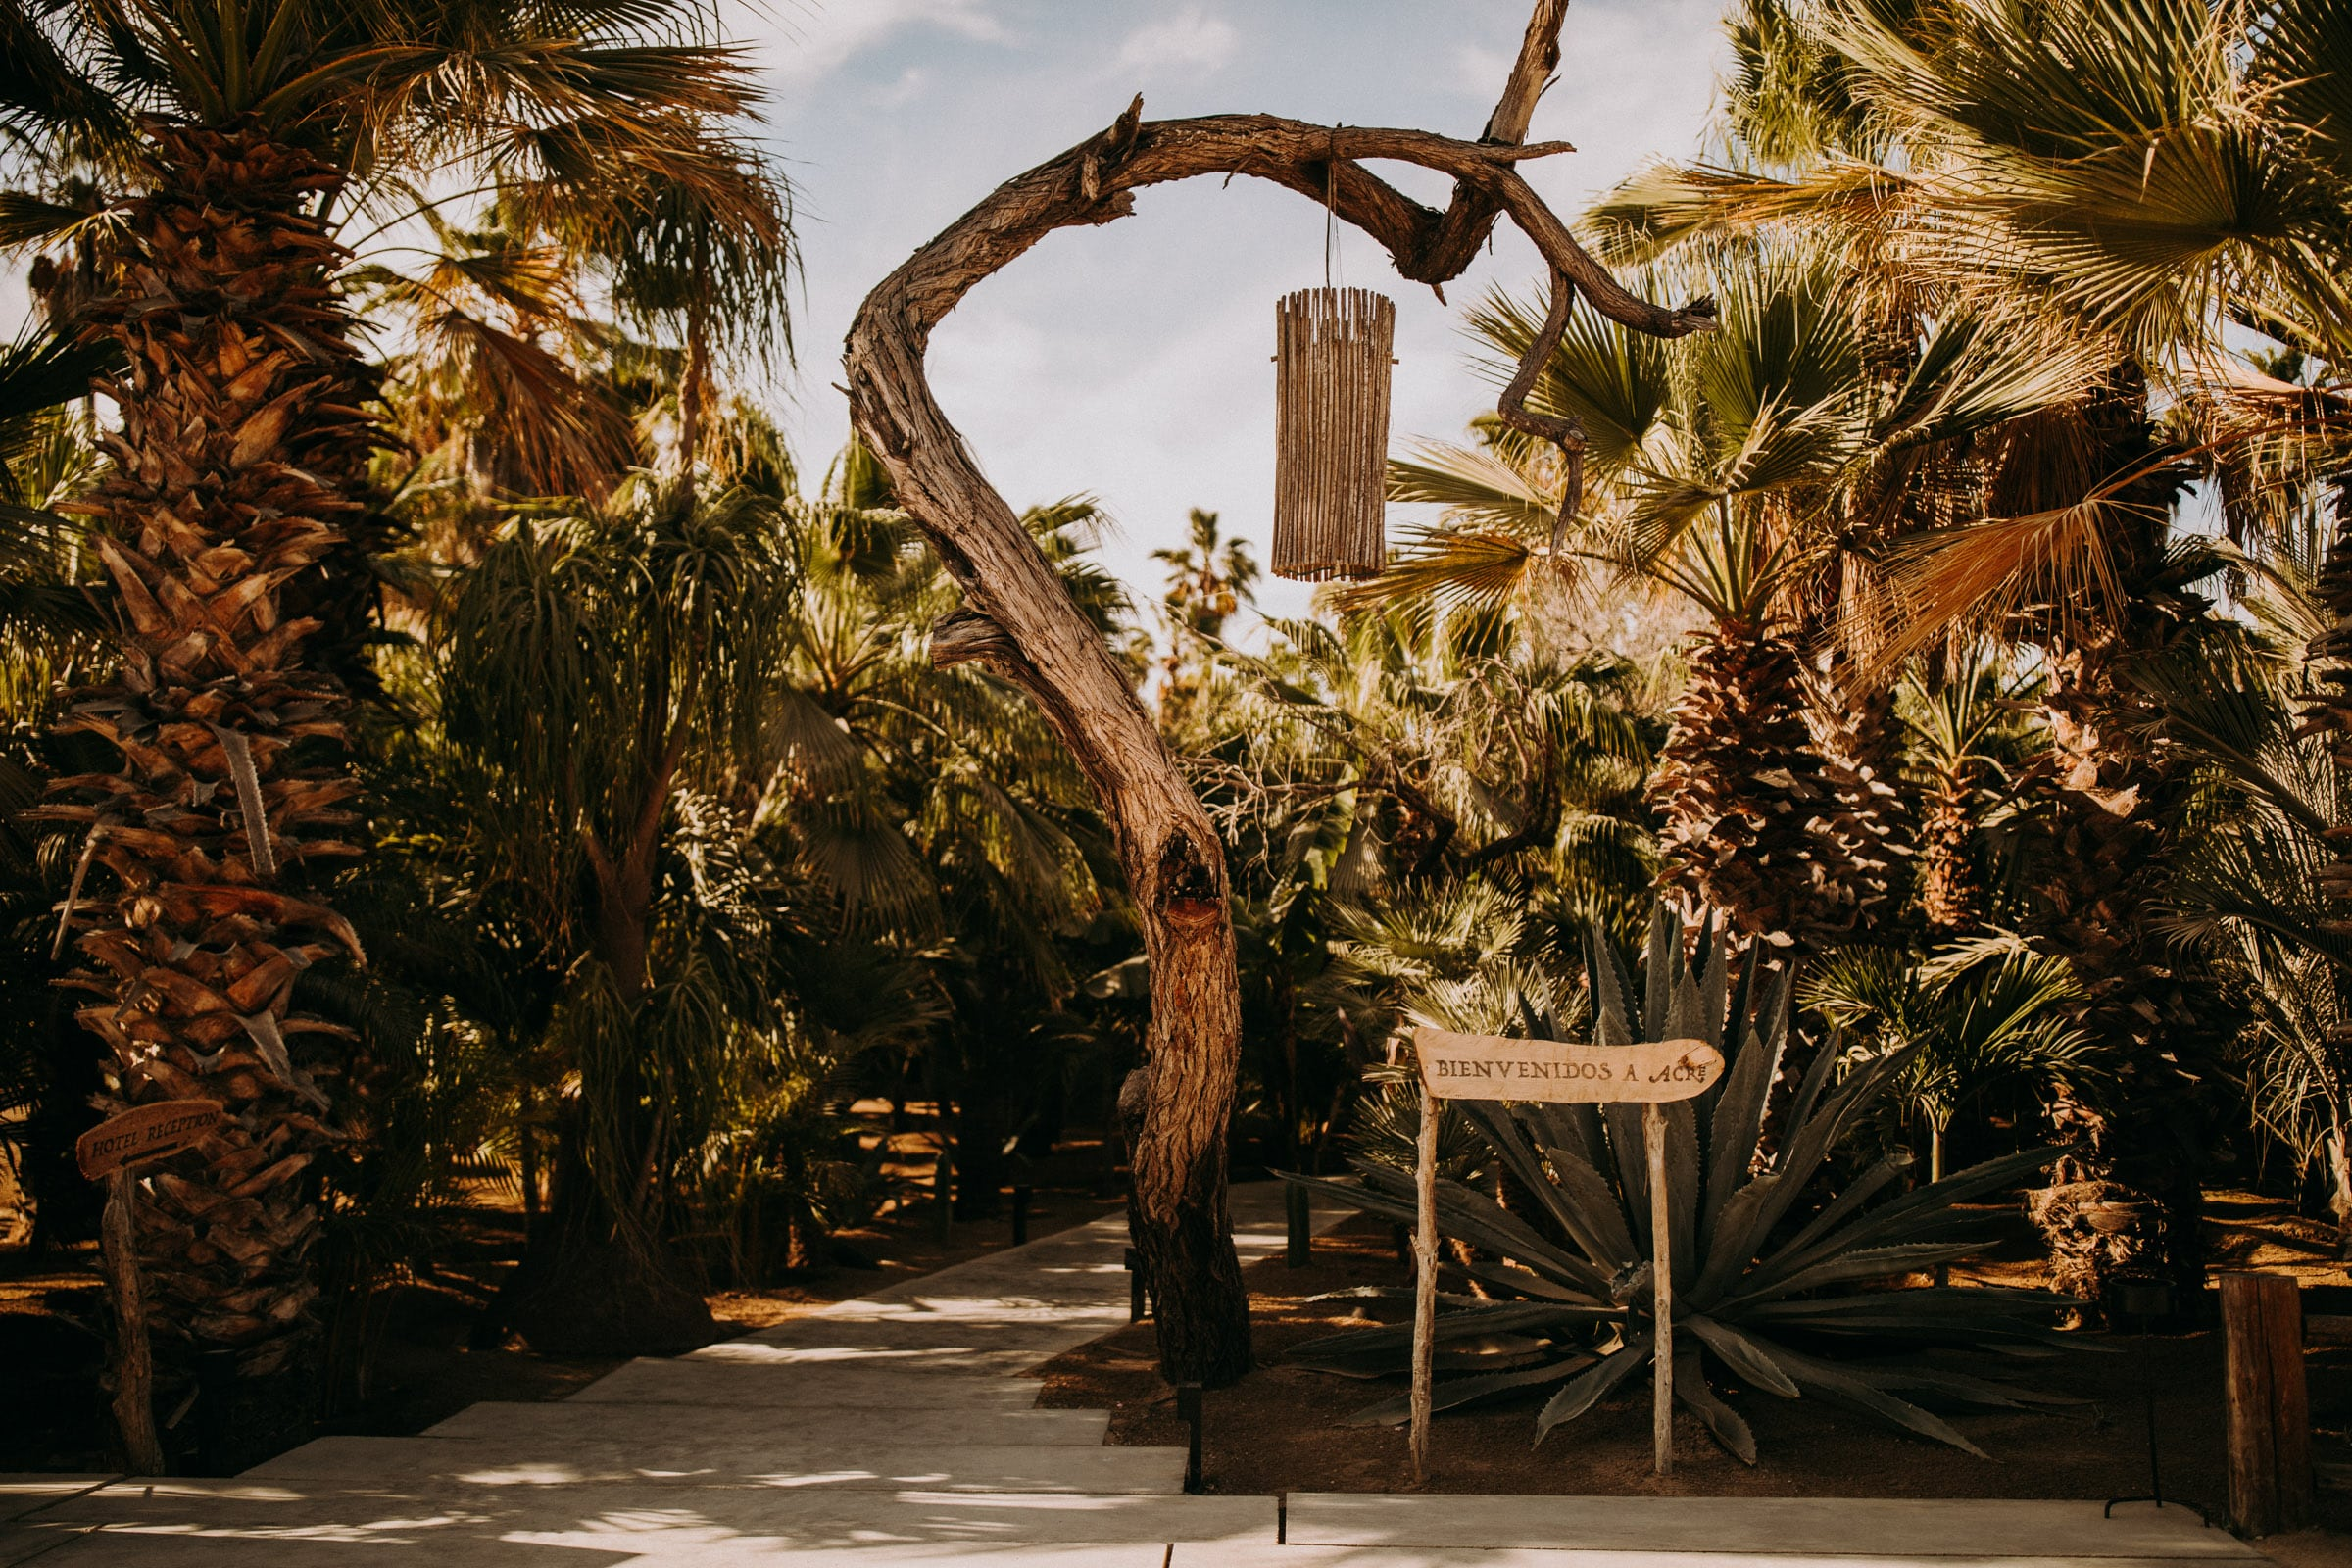 The acre baja front entrance features palm trees and rustic wooden signs.